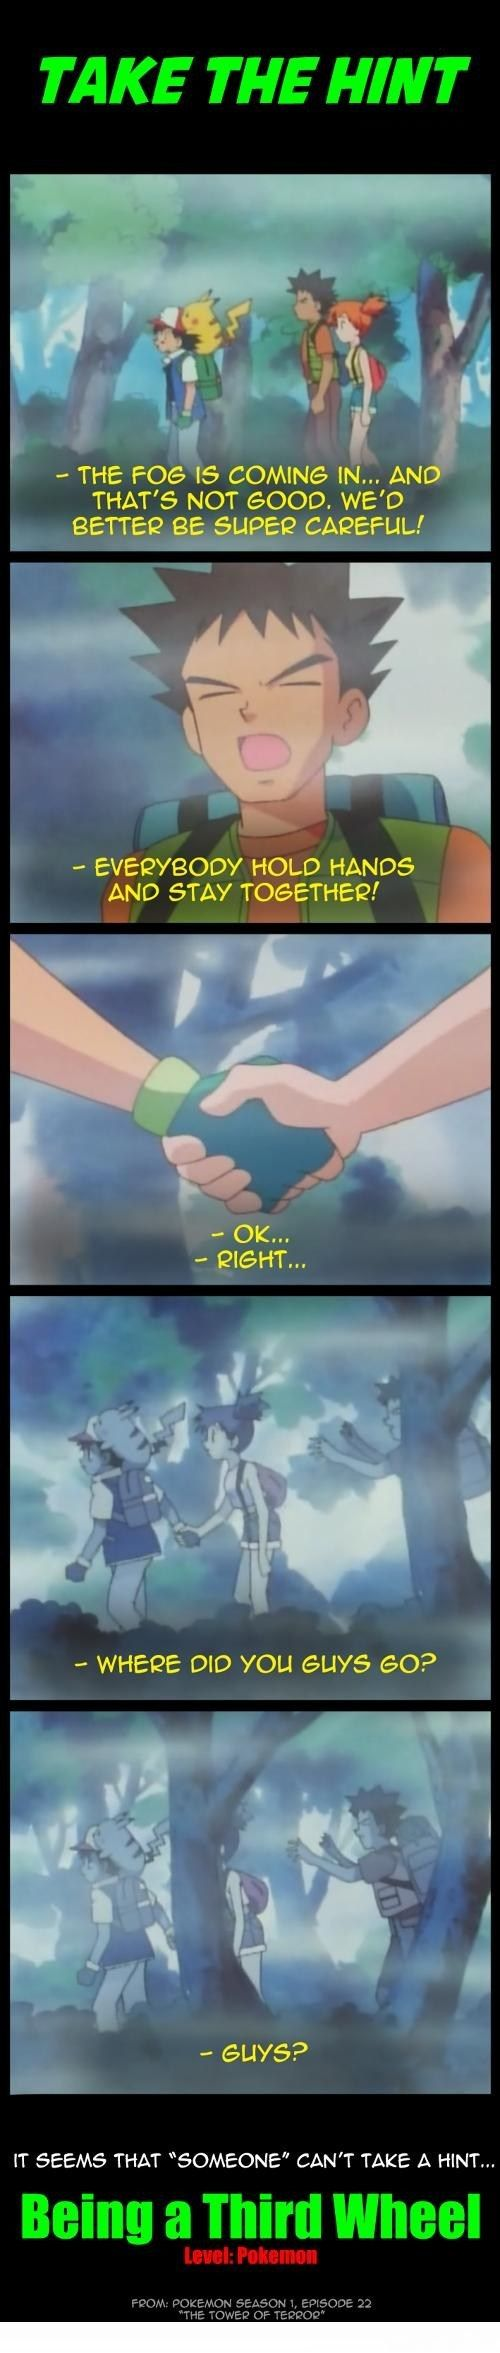 Sigh...I shipped those two pretty hard when I first watched this show :(  and yeah, poor Brock haha